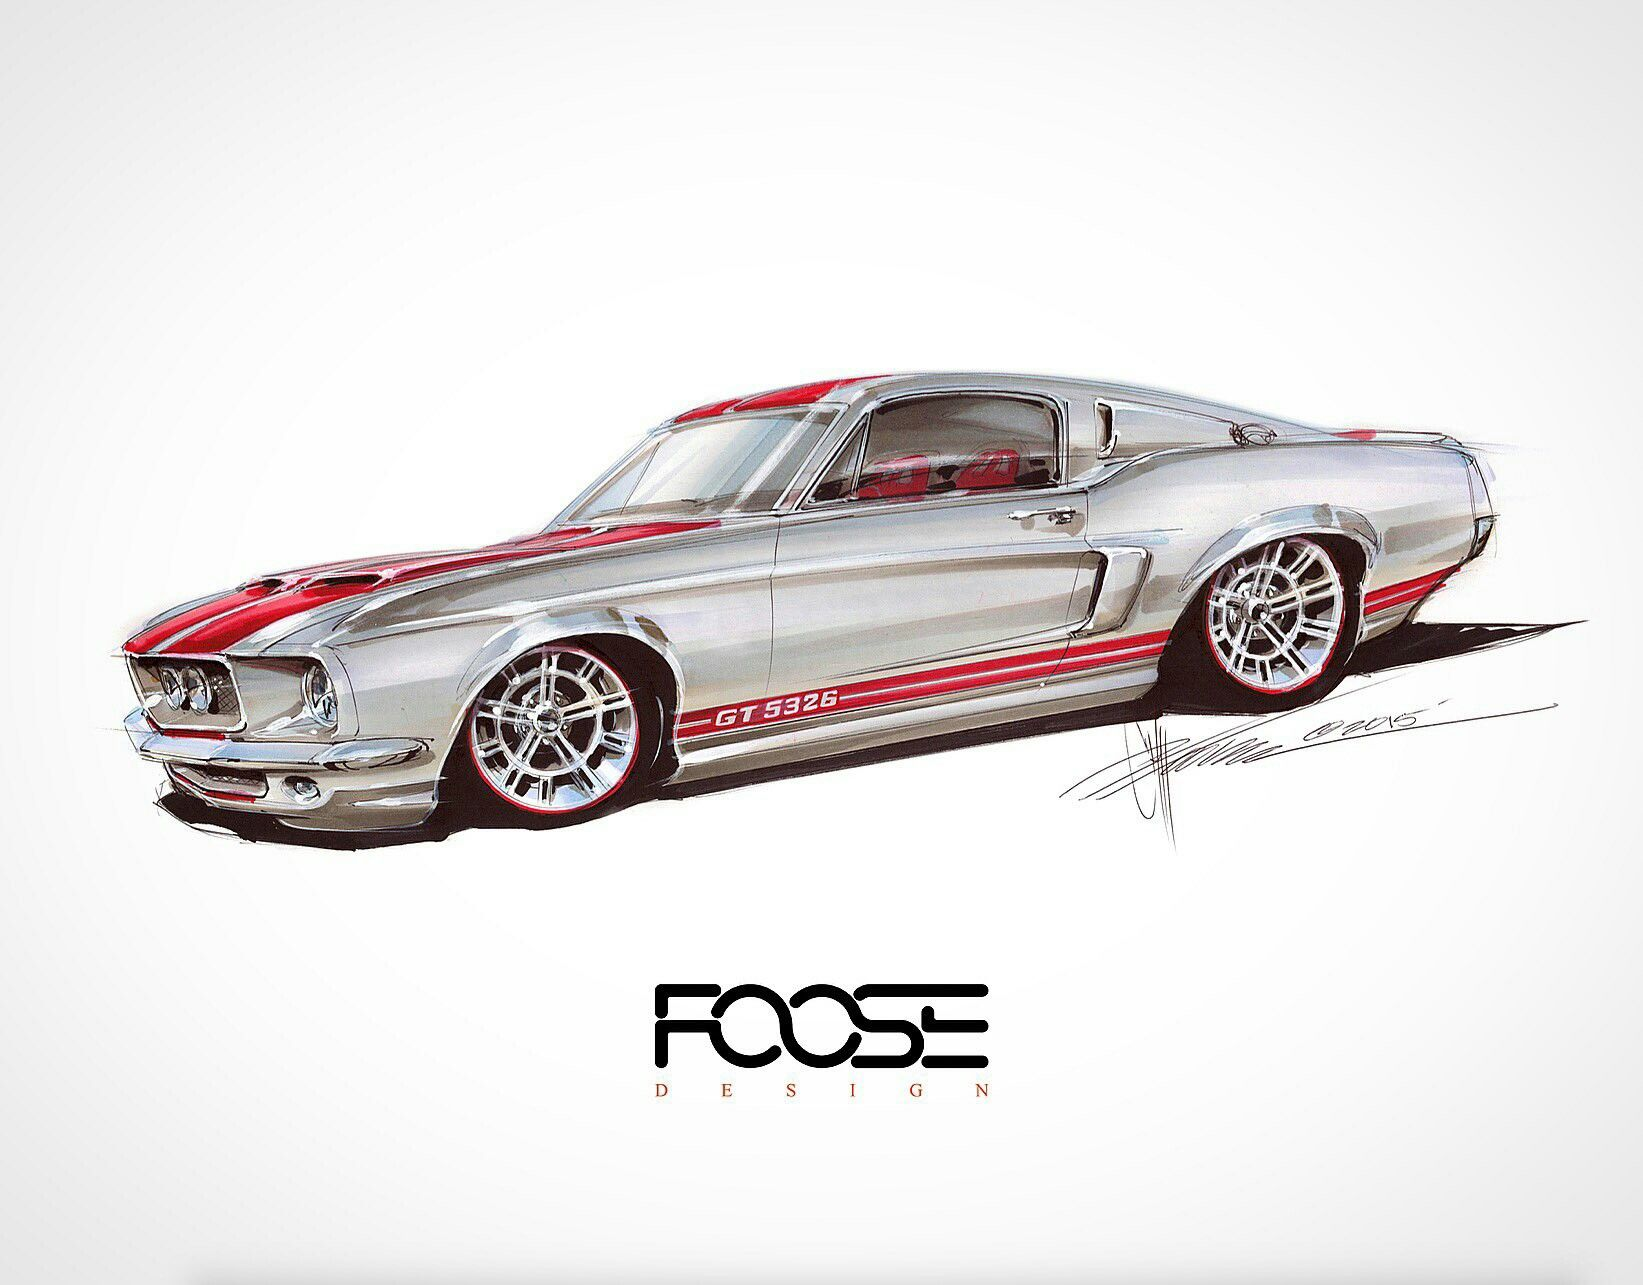 Pin by josh on vehicle pics Chip foose, Car drawings